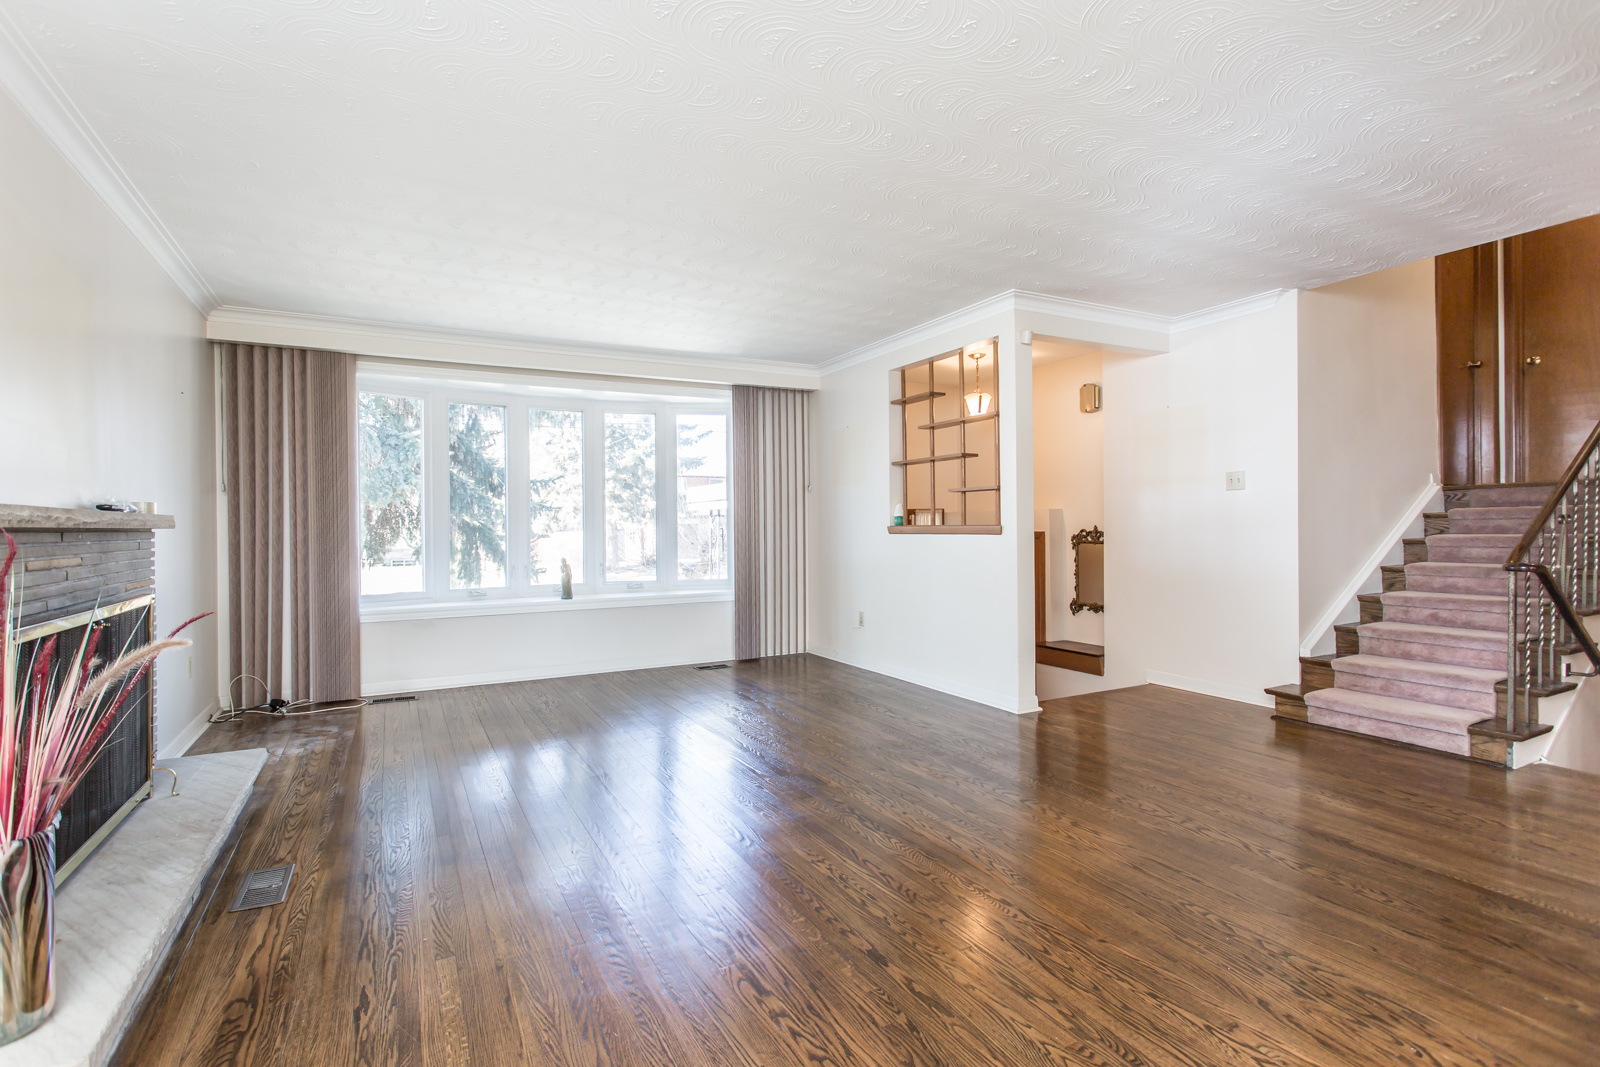 Image shows living room, hardwood floors, and rather wide windows.